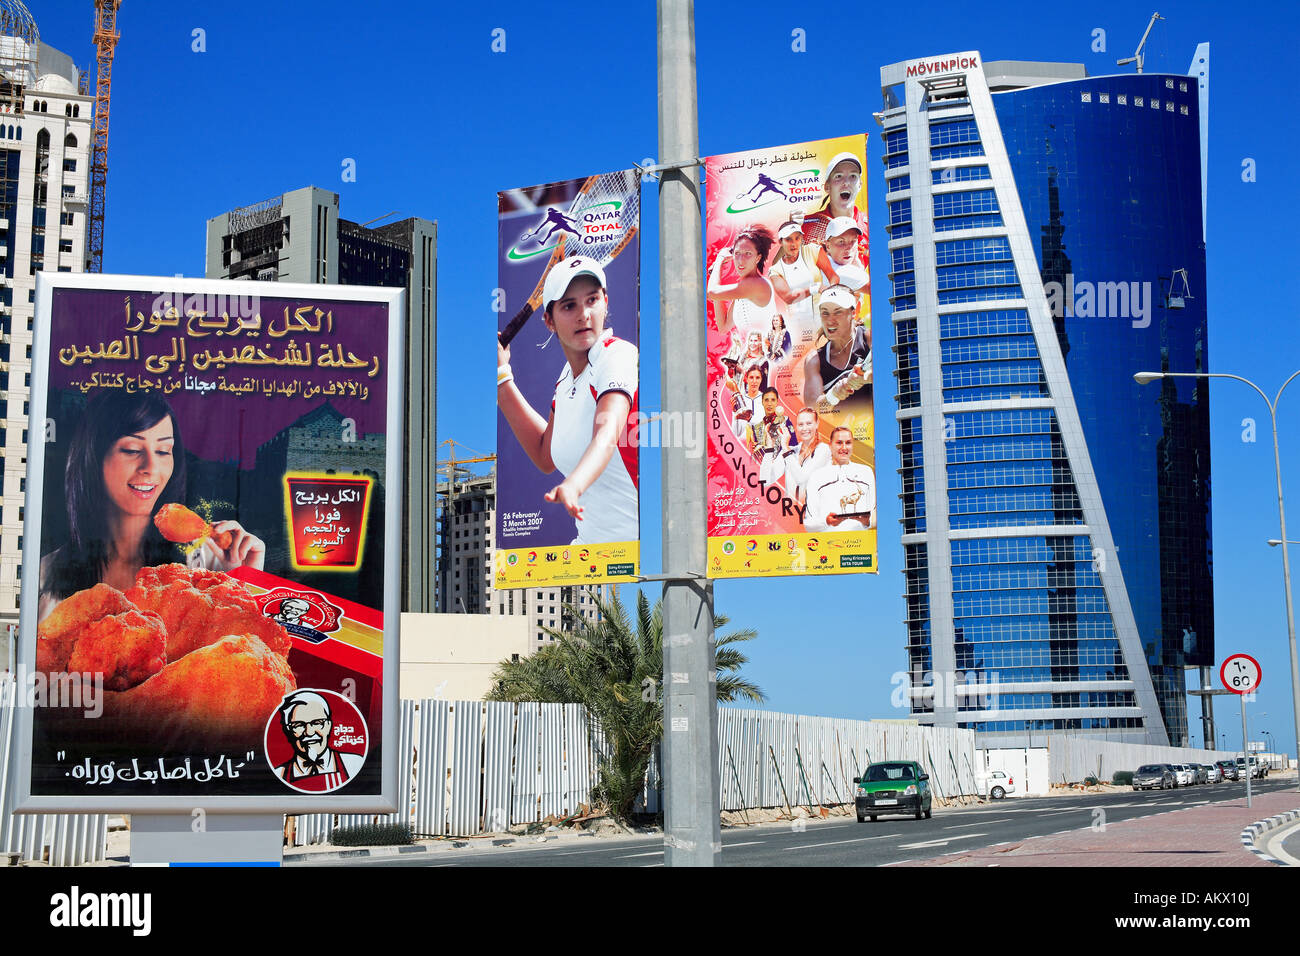 Qatar, Doha, Mövenpick Hotel and advertisements for the Tennis Open and Kentucky Fried Chicken - Stock Image